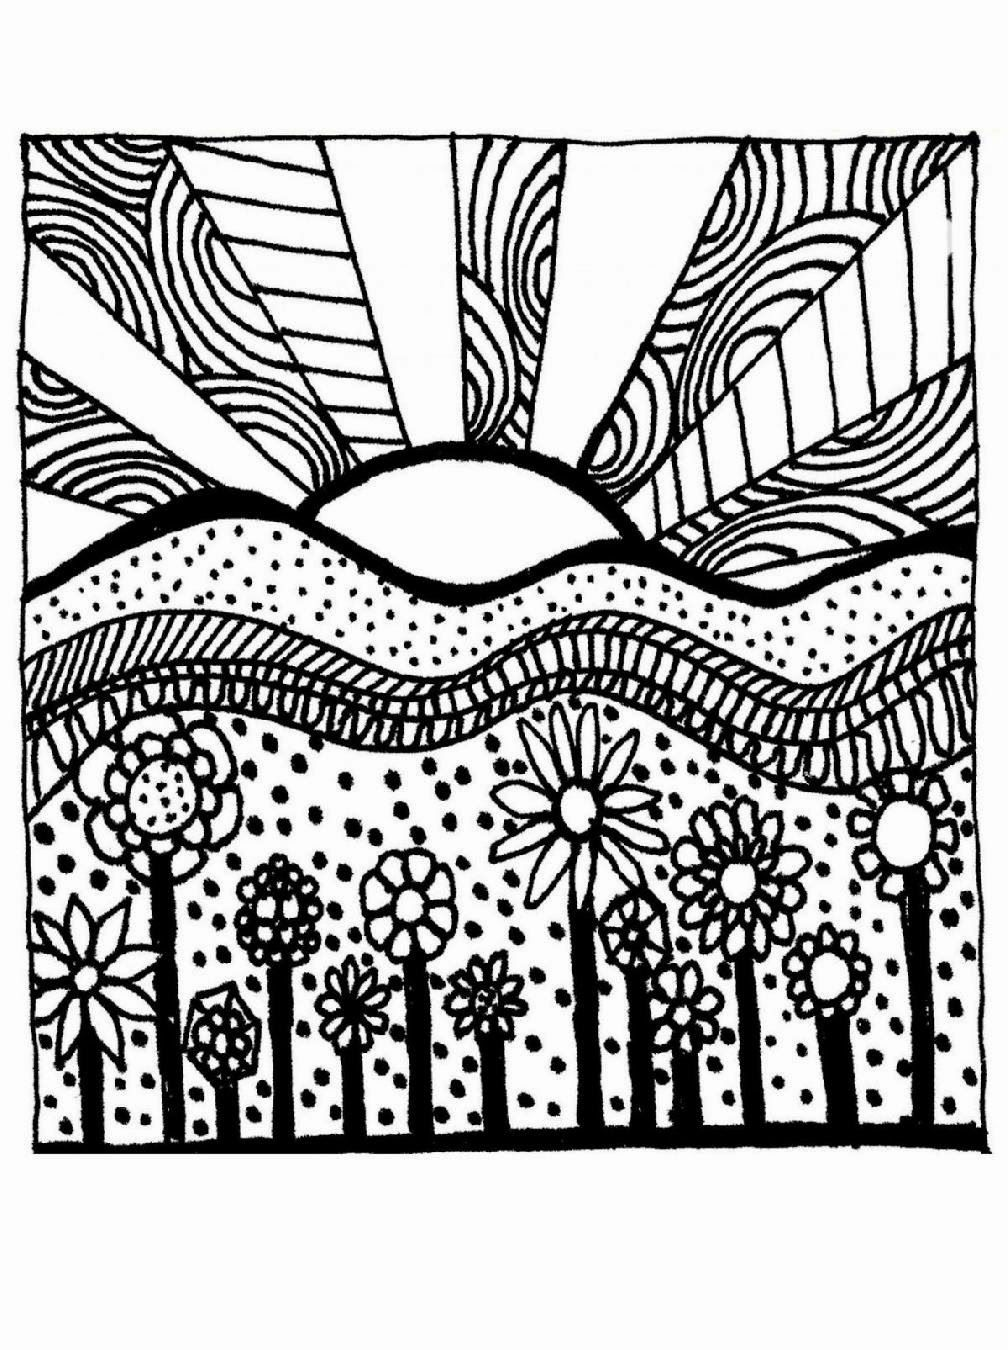 Coloring pages for adults abstract - Free Coloring Pages For Adults Koloringpages